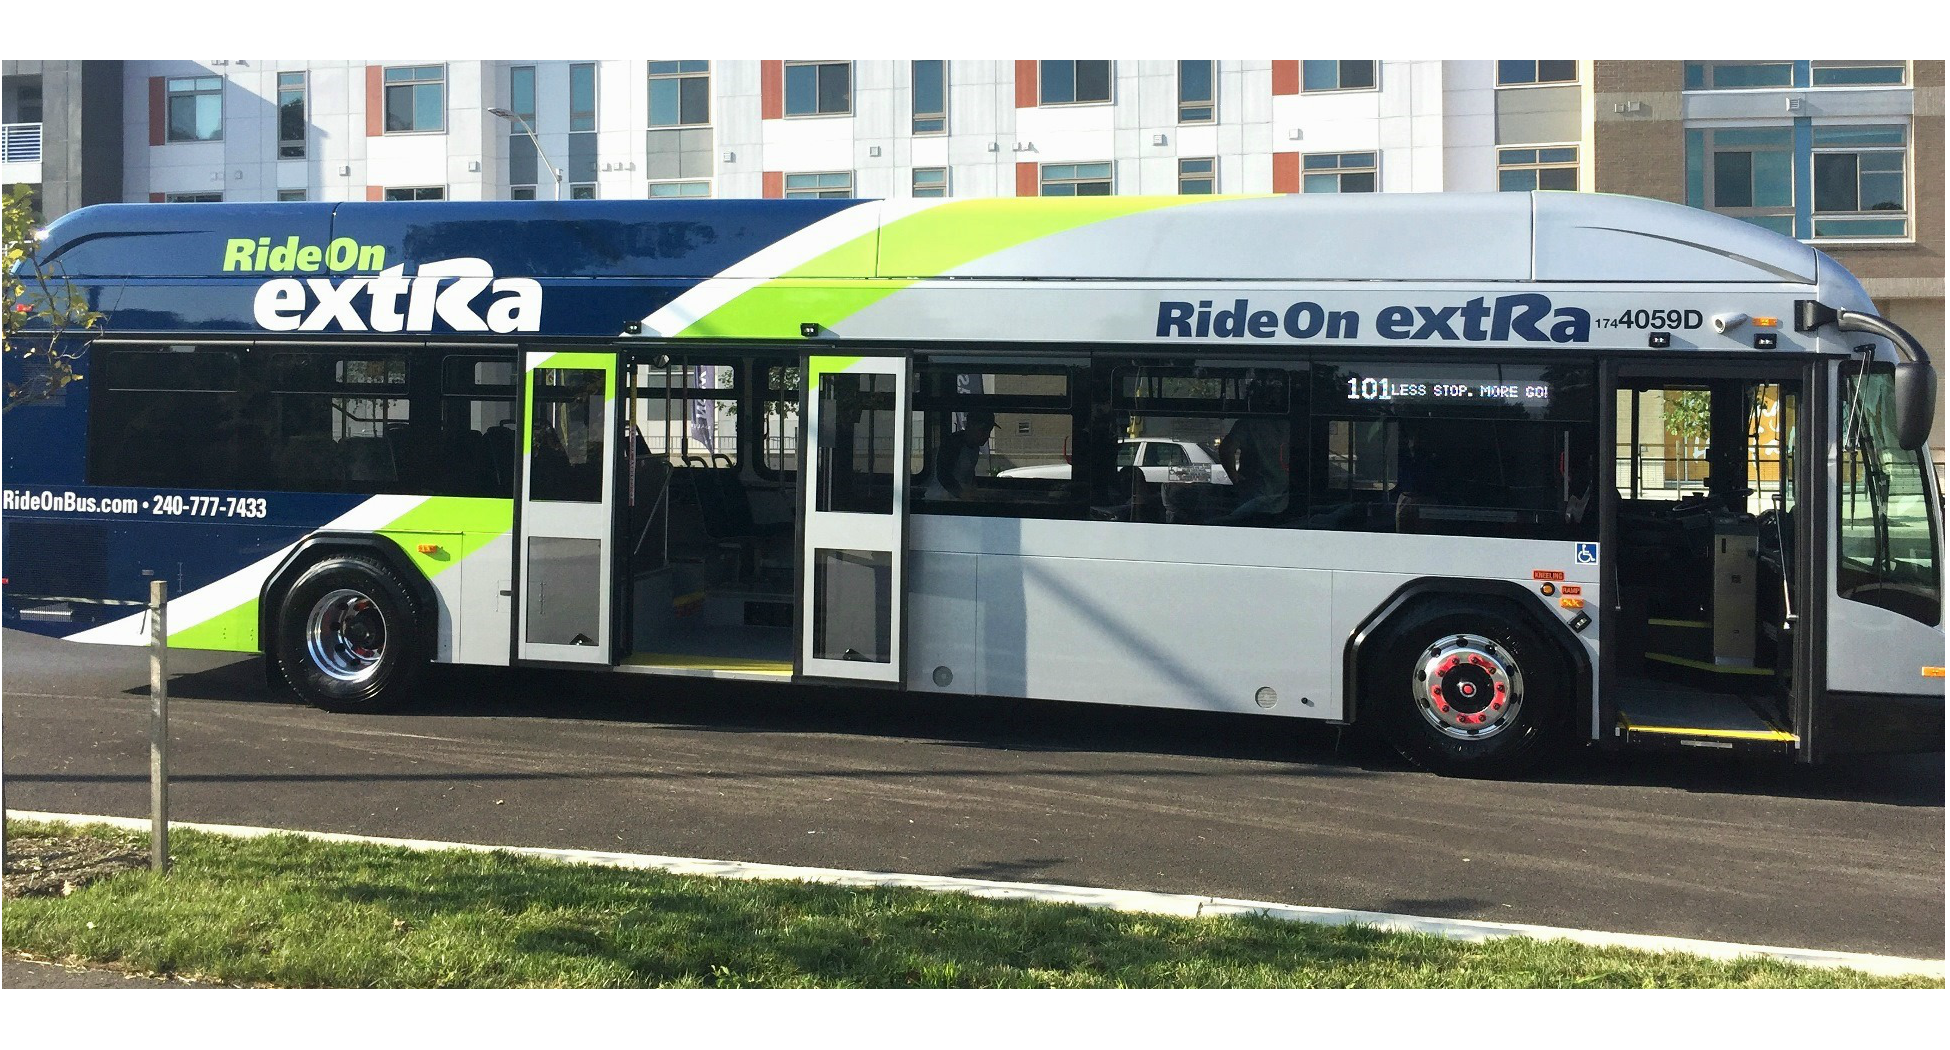 New Ride On Extra Service Is Free In October